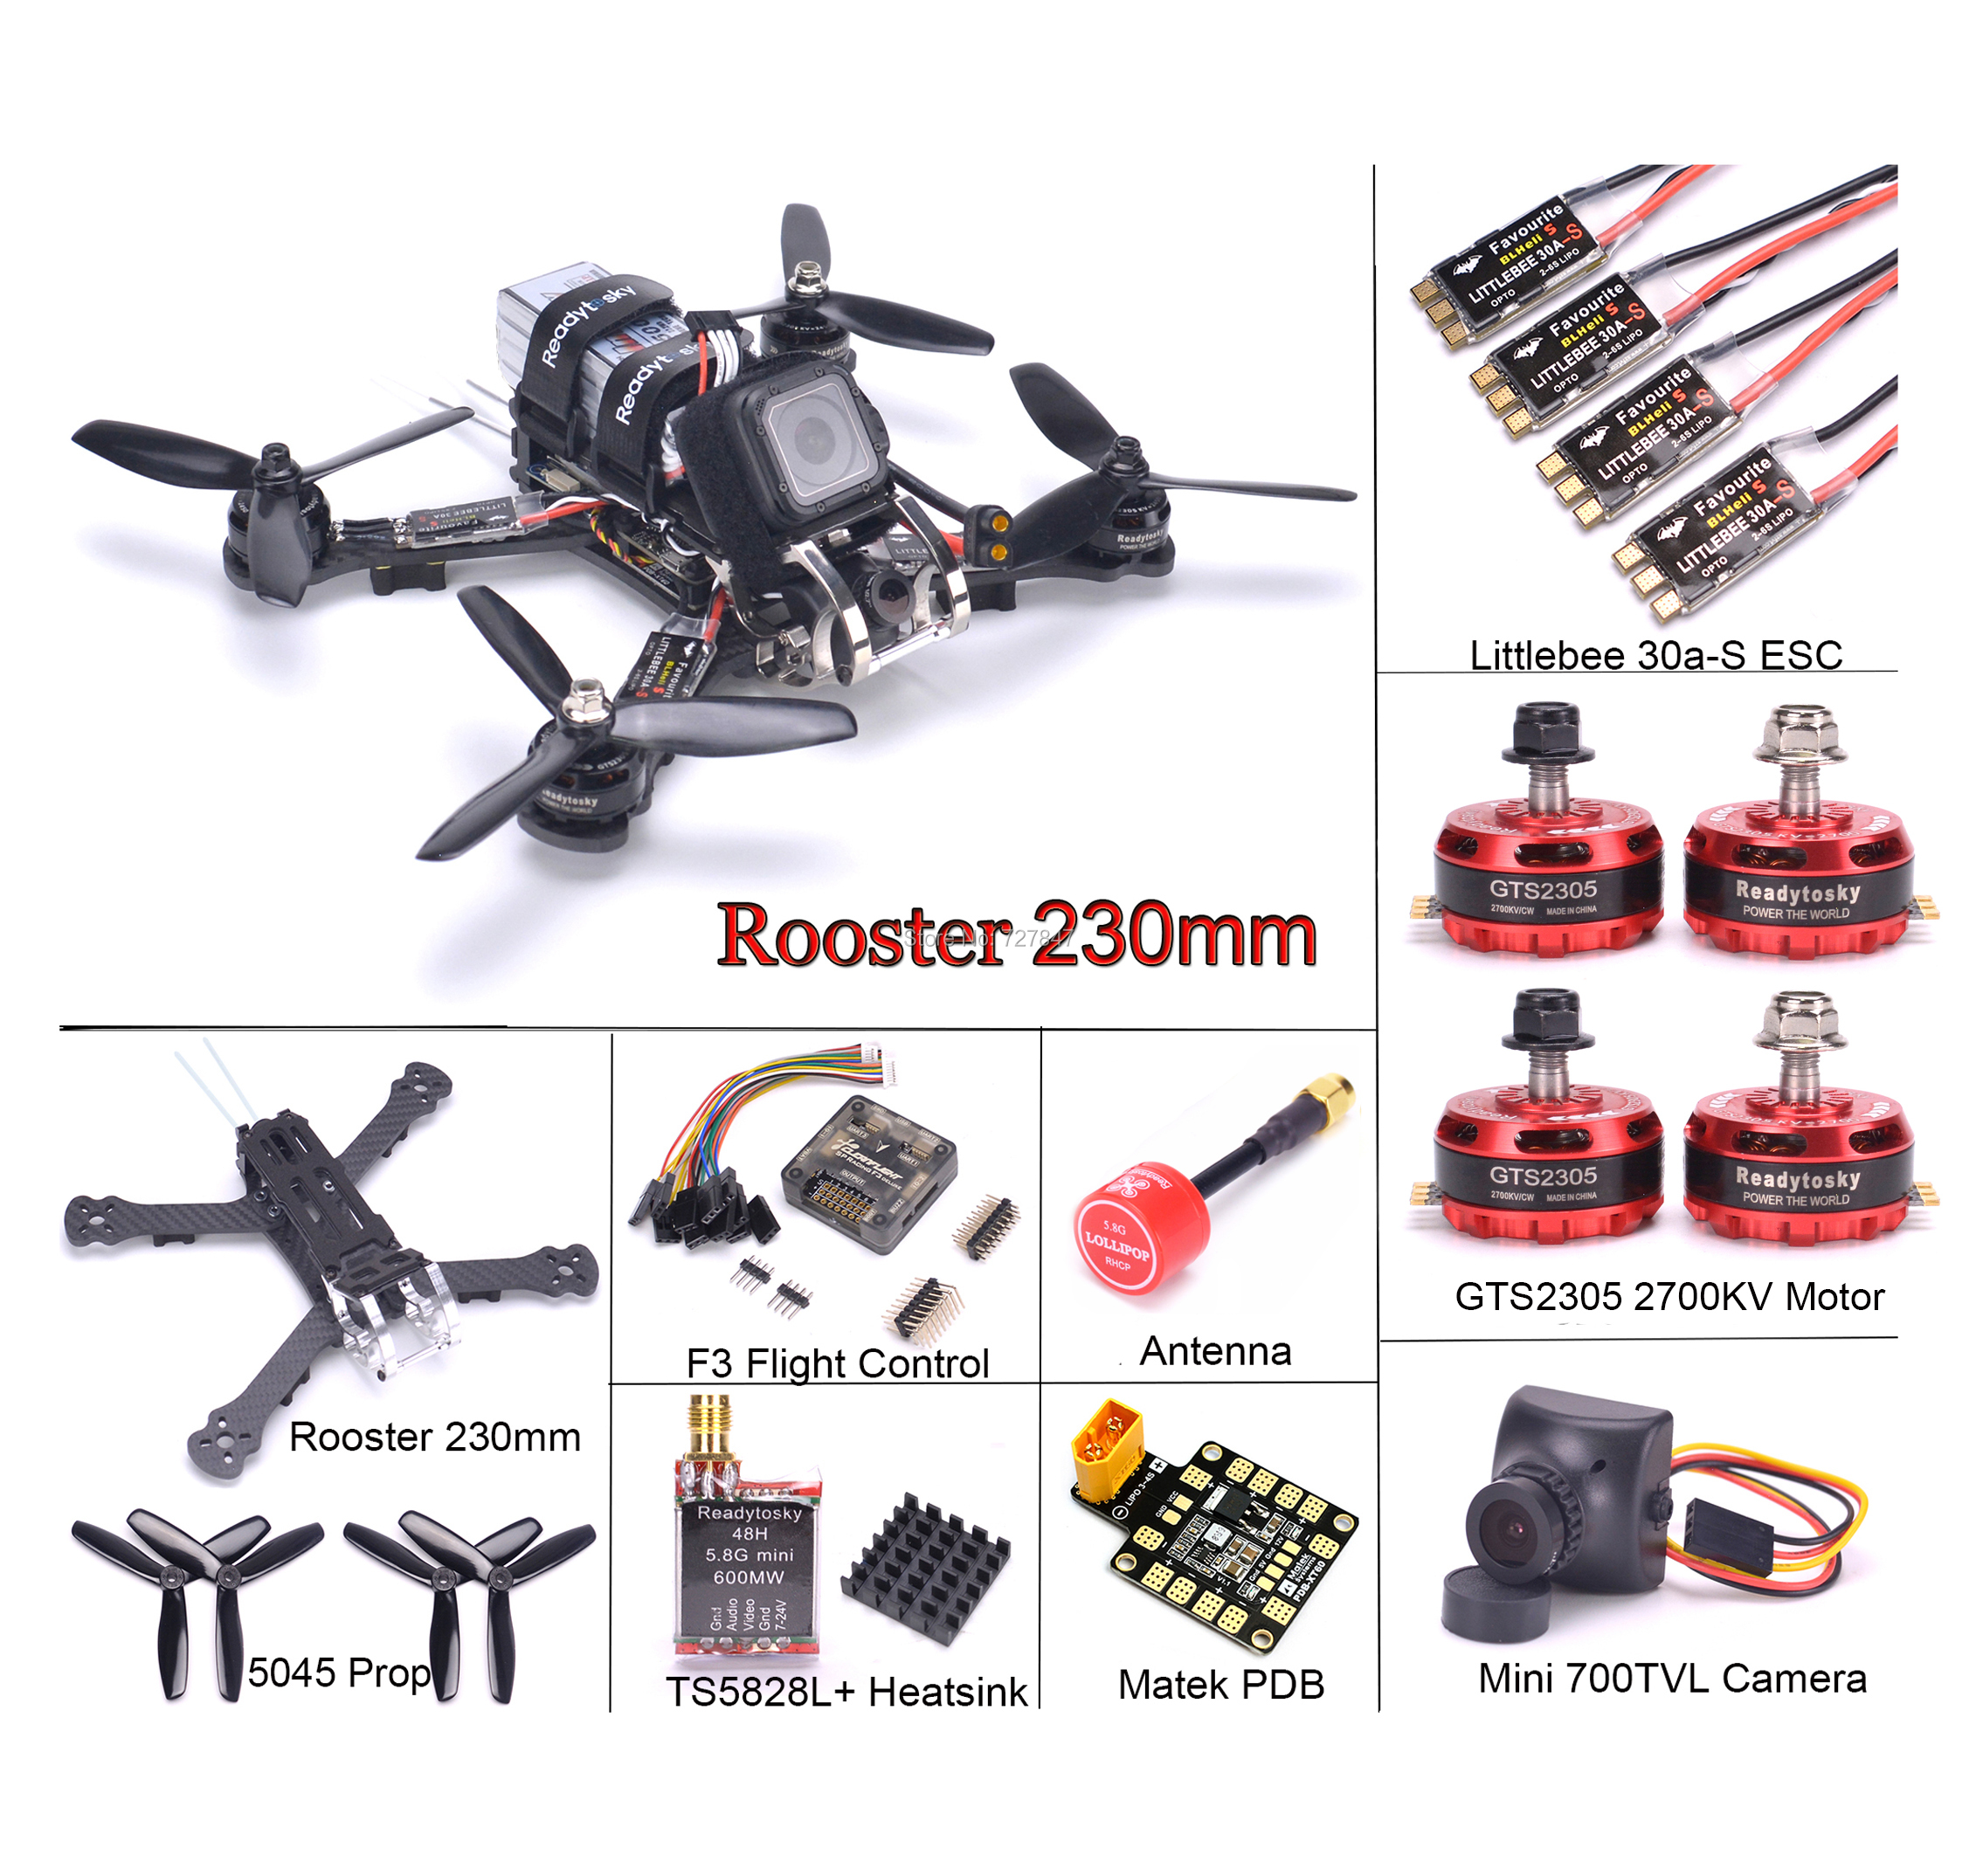 Rooster 230 Carbon Fiber Quadcopter Kit F3 flight controller GTS2305 2700KV Motor Littlebee 30A S For